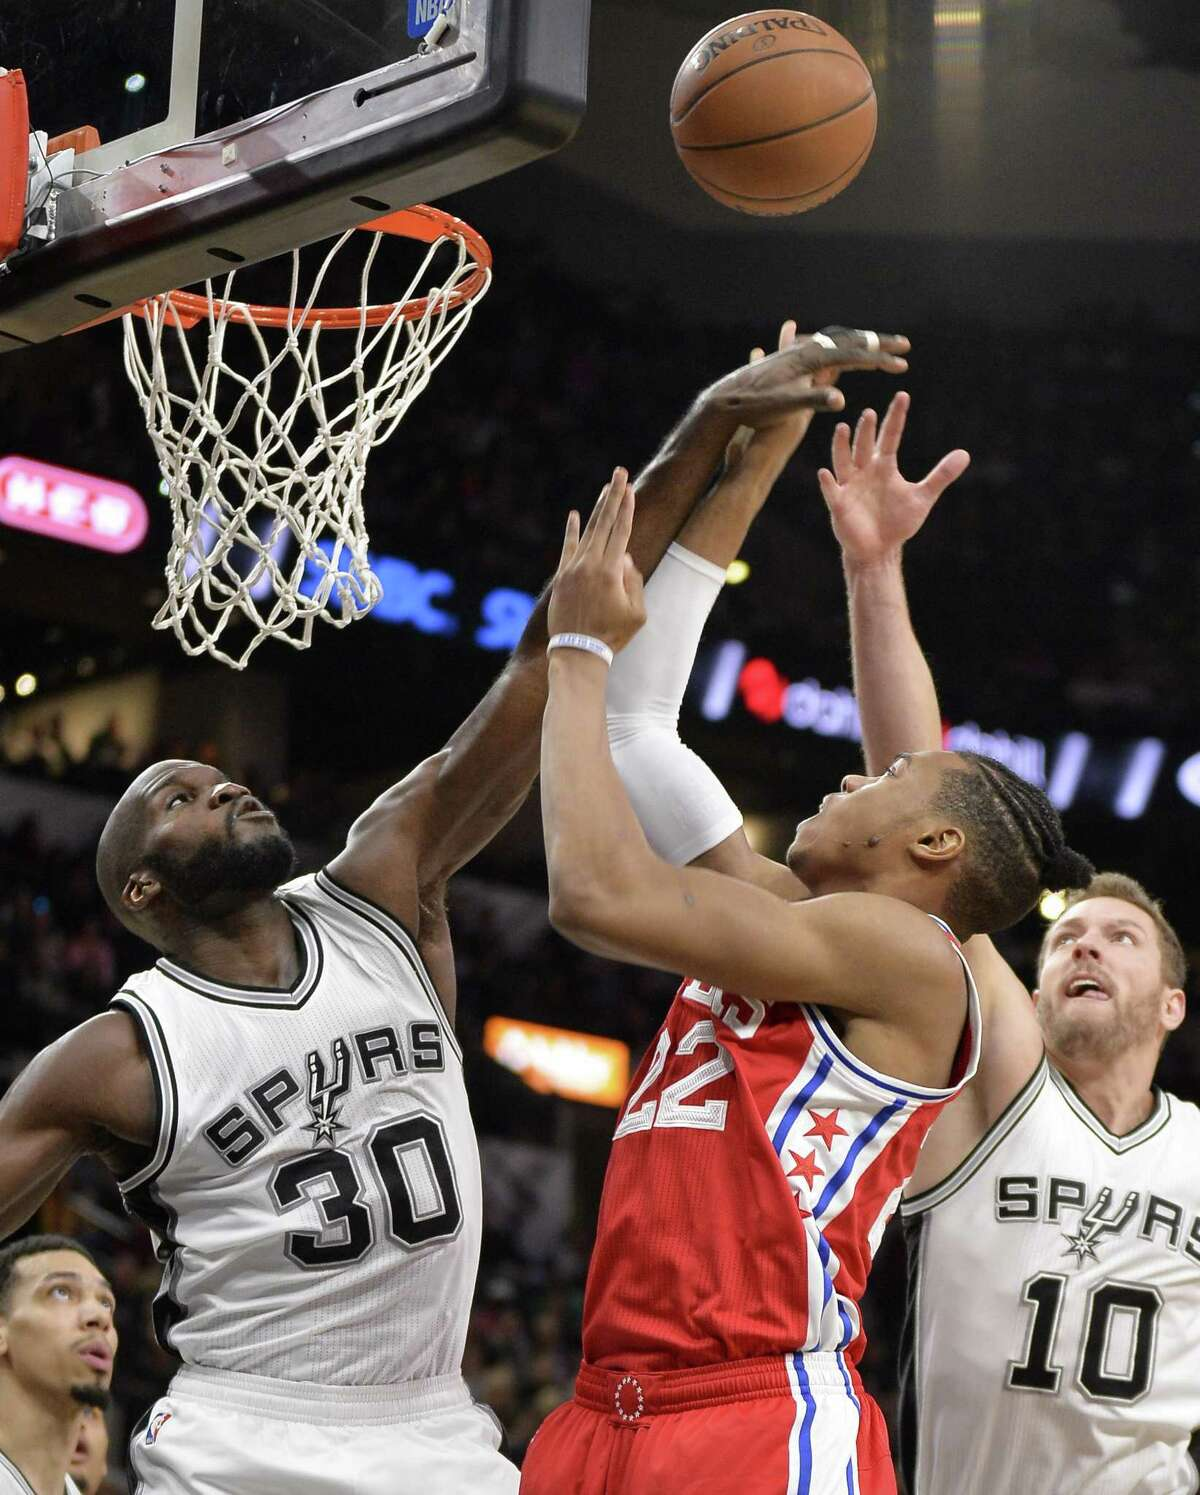 Here is the status of every free agent on the Spurs roster this summer. Joel Anthony Unrestricted